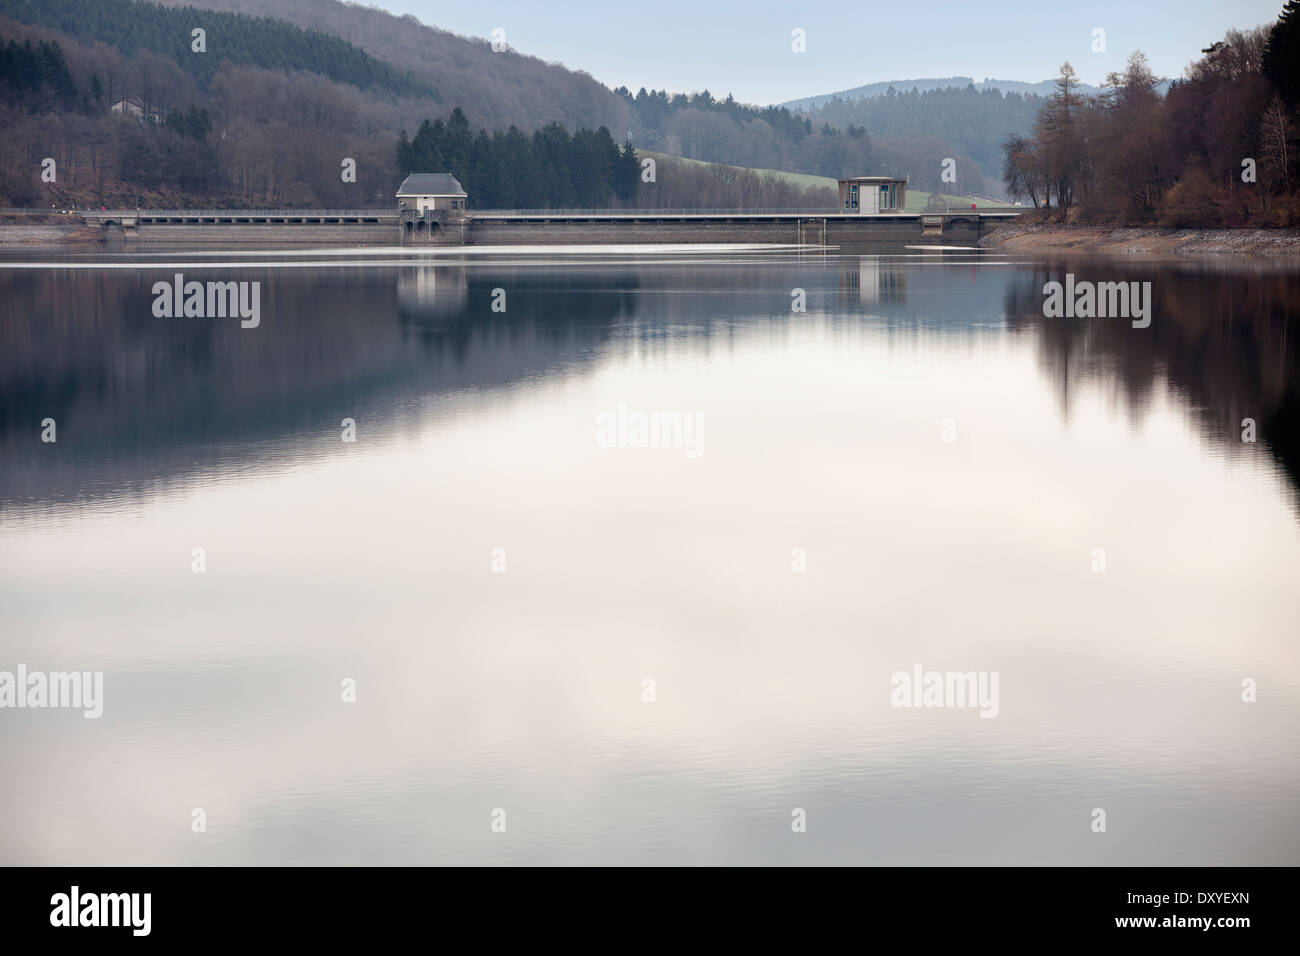 Dam of the Lister Reservoir, Attendorn, Germany, Europe, Stock Photo